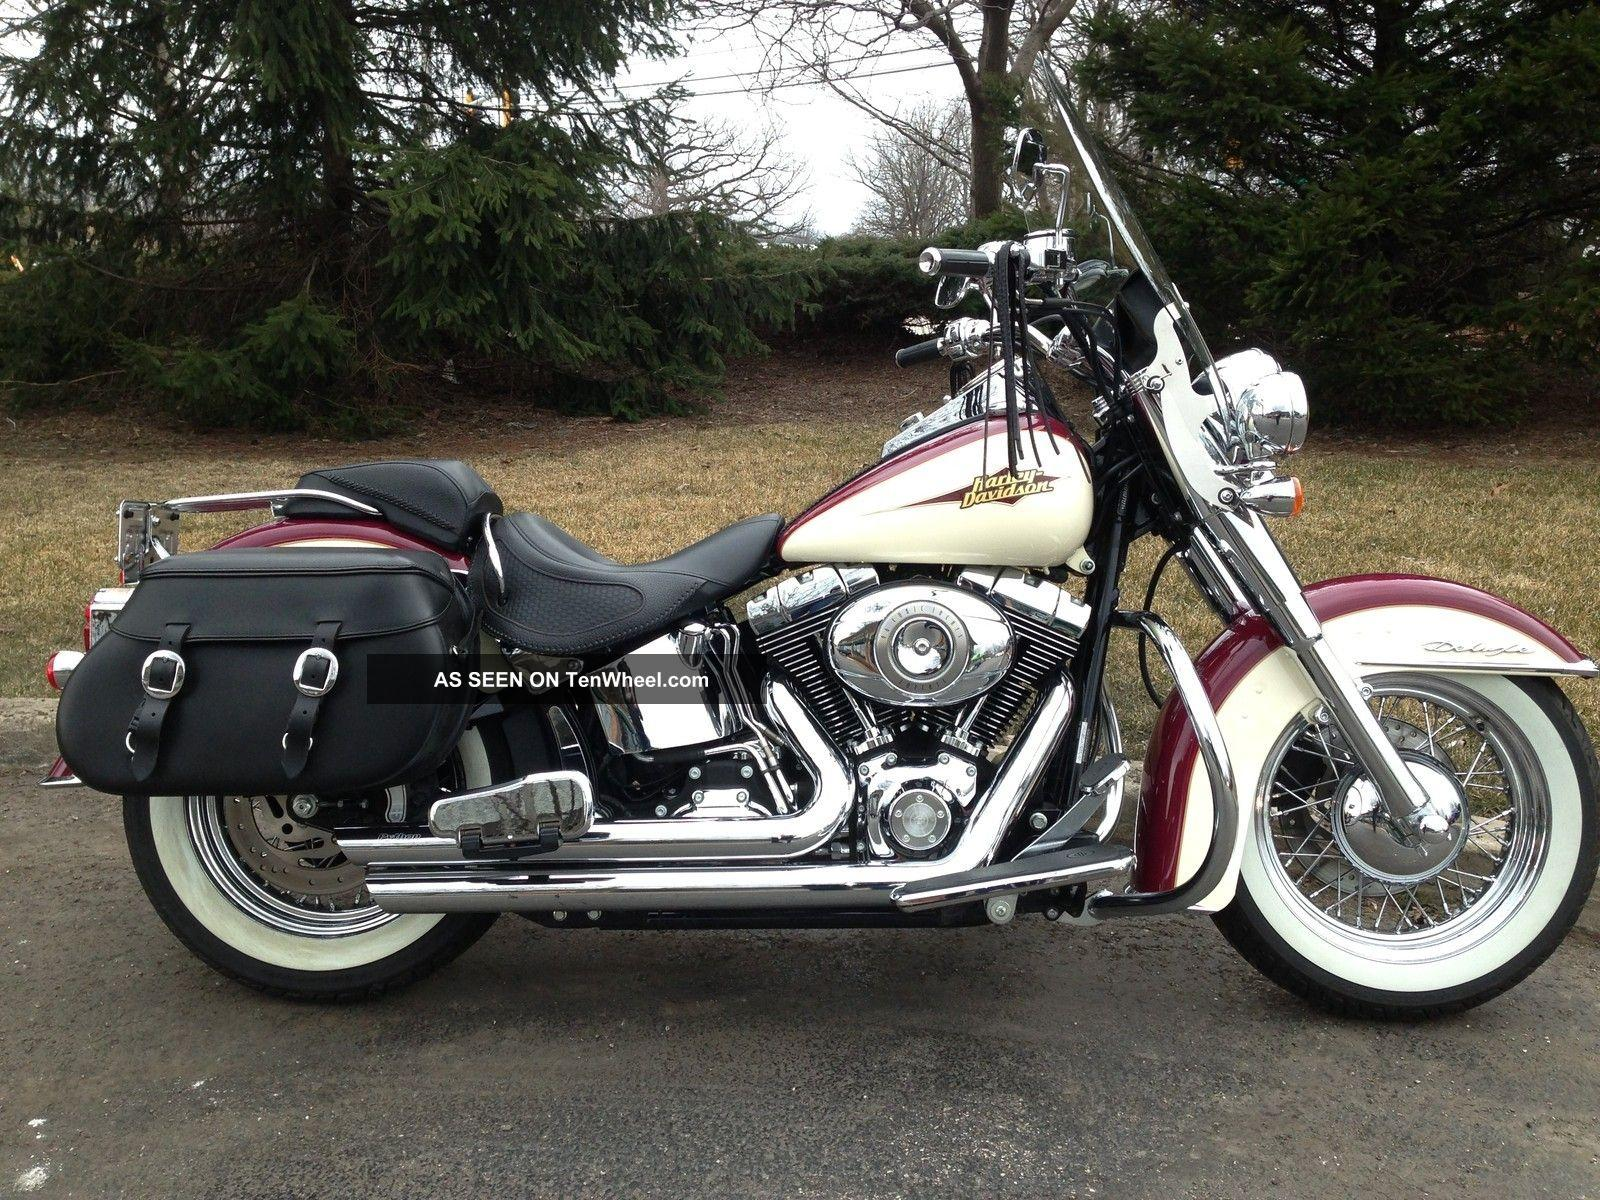 Harley Davidson Heritage Softail Review